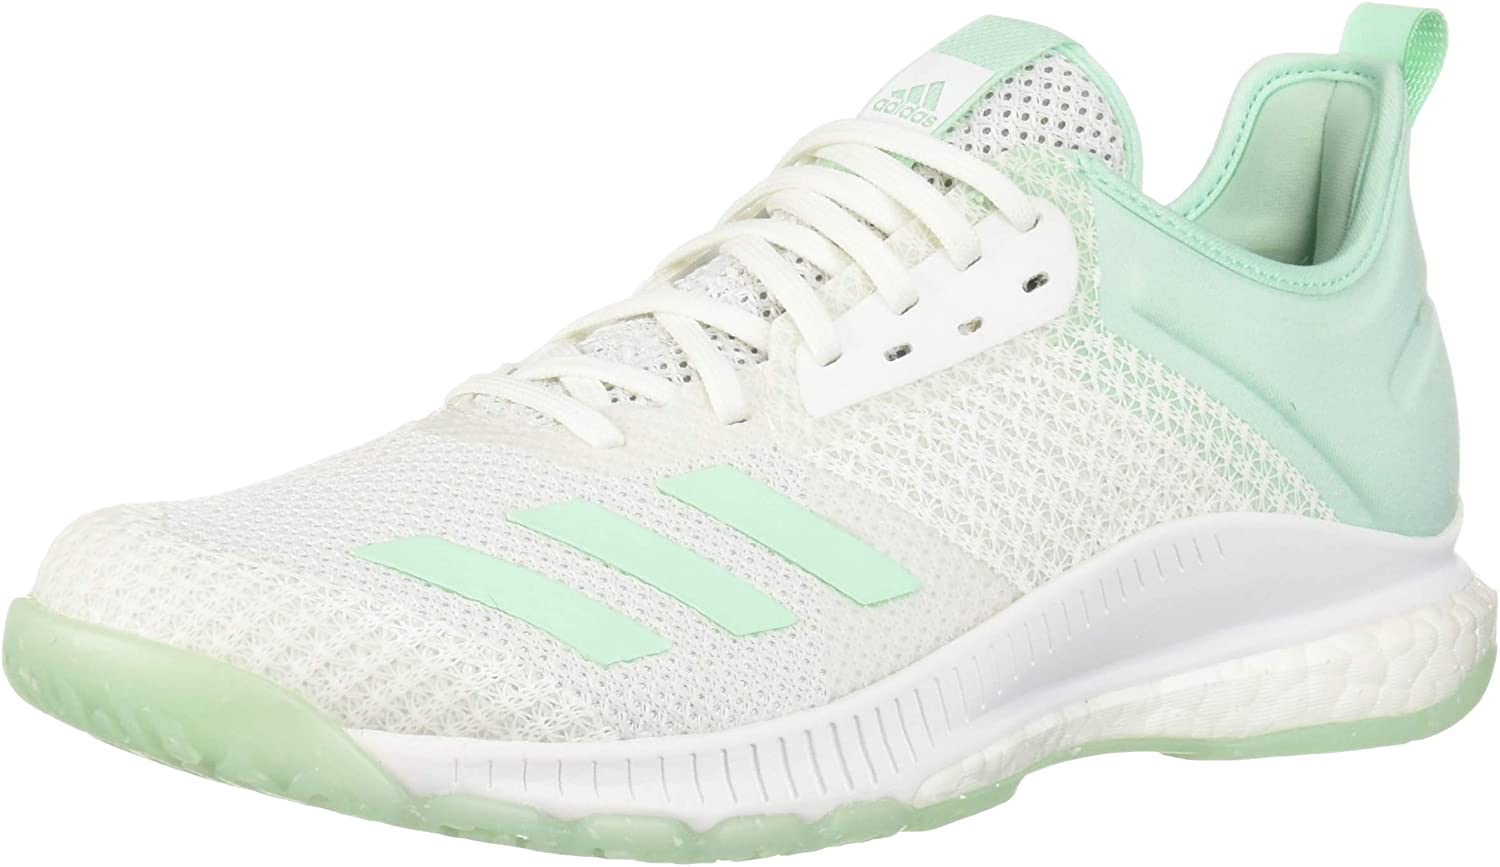 adidas Women s Crazyflight X 3 Parley Volleyball Shoe